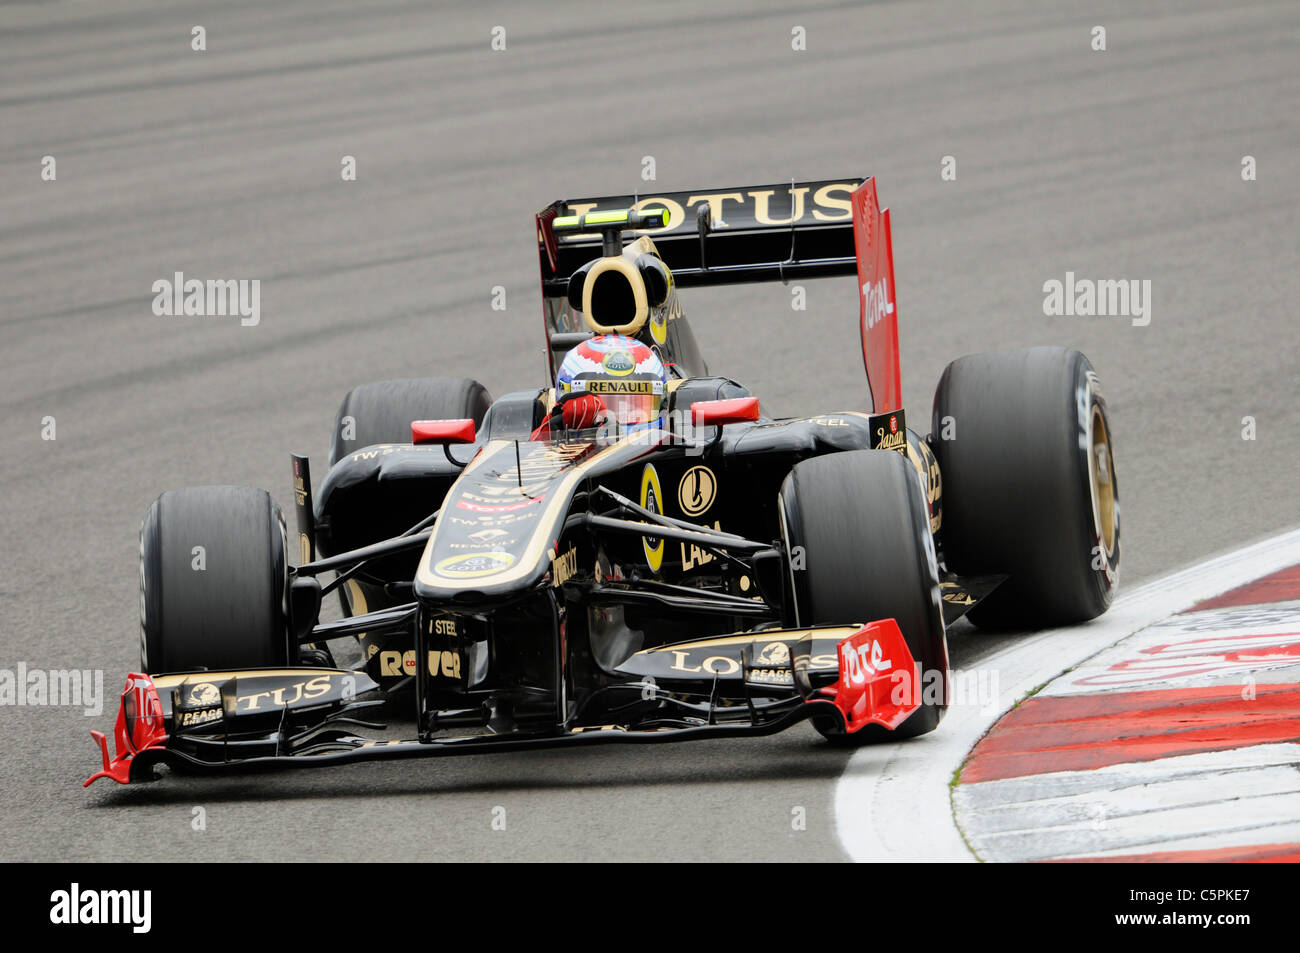 Witali Petrow (RUS), Renault during the German Formula One Grand Prix at Nuerburgring - Stock Image